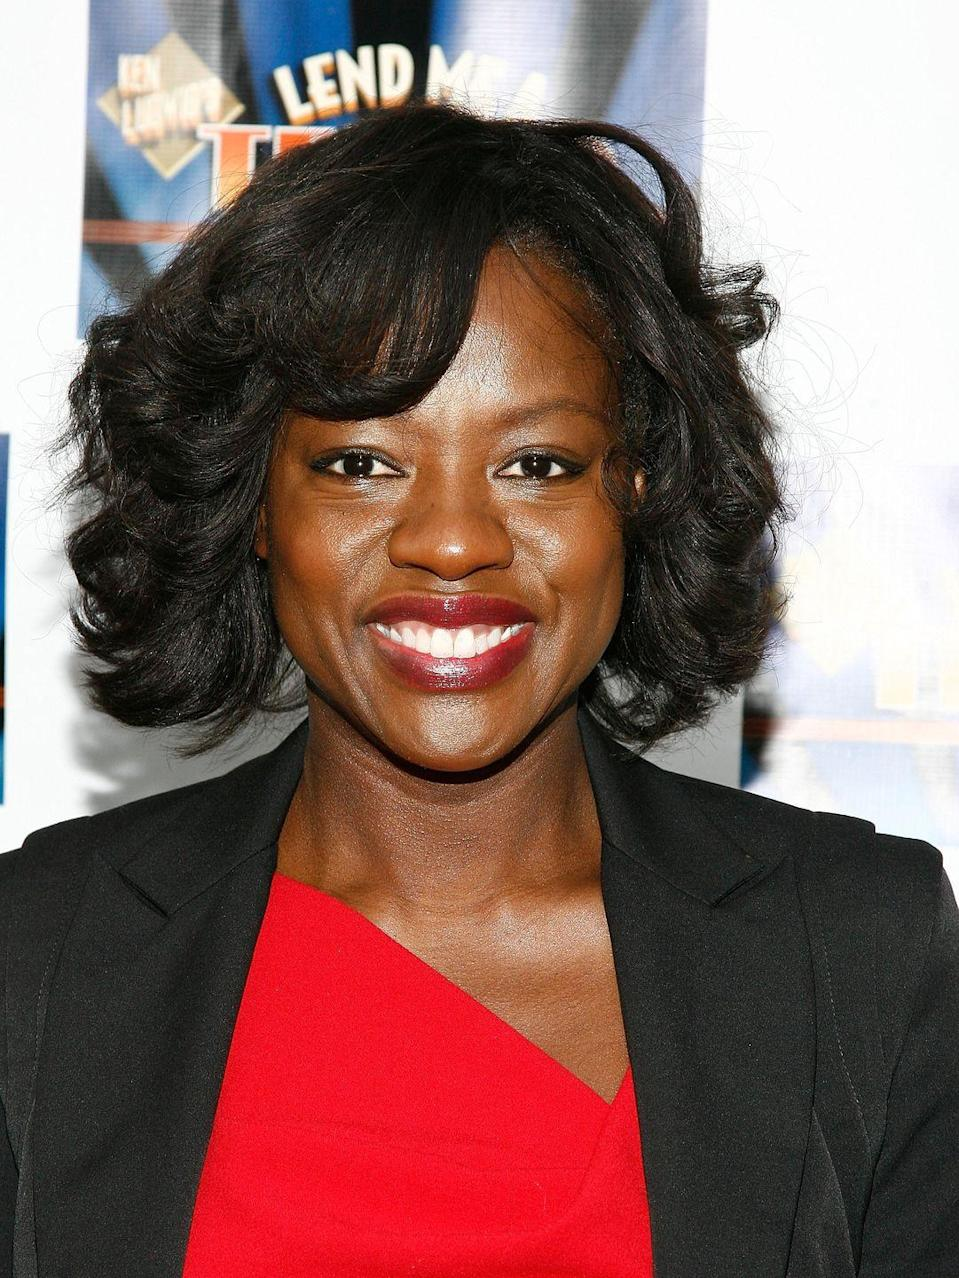 <p>Viola Davis starred in an off-Broadway production of <em>As You Like It </em>in 1992, and then made her Broadway debut four years later in <em>Seven Guitars. </em>She went on to TV and film success, with the notable main role in <em>How to Get Away with Murder. </em>She also won an Oscar, Golden Globe and SAG Award for the 2016 film <em>Fences. </em>Davis returned to Broadway in 2001 for <em>King Hedley II, </em>for which she received a Tony Award. <br></p>